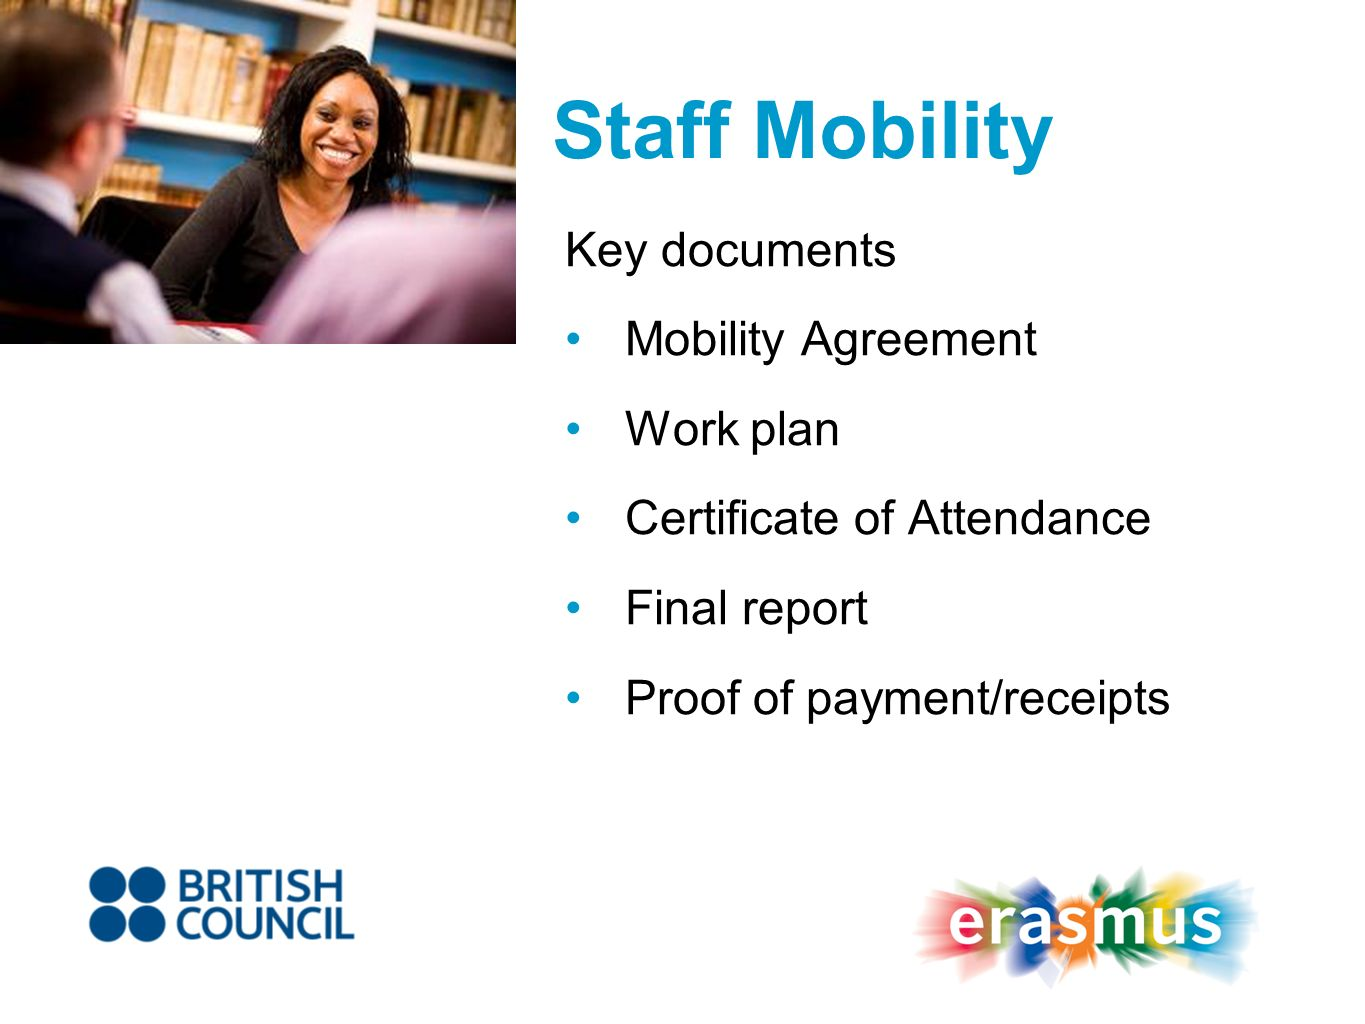 Staff Mobility Key documents Mobility Agreement Work plan Certificate of Attendance Final report Proof of payment/receipts